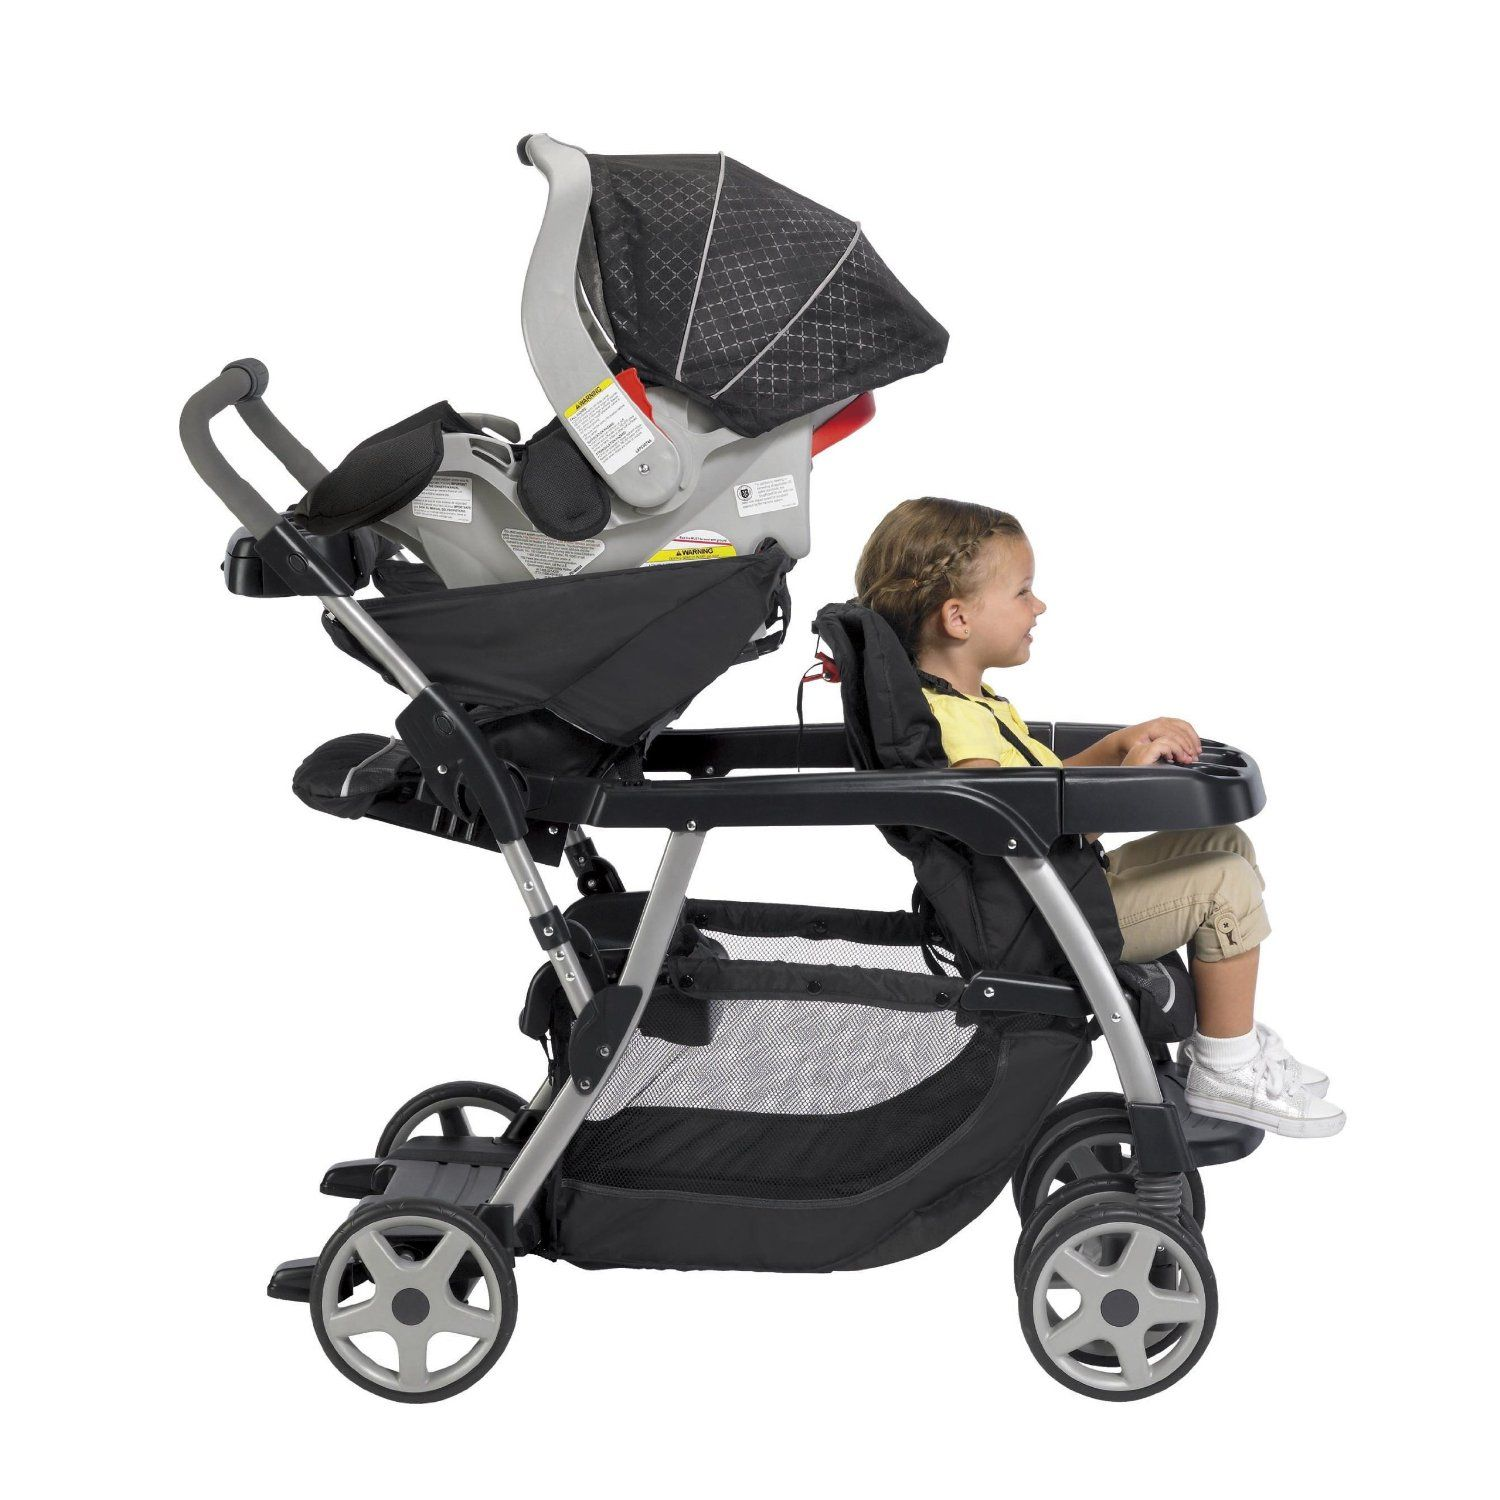 Graco Ready2Grow Stand And Ride Stroller Features